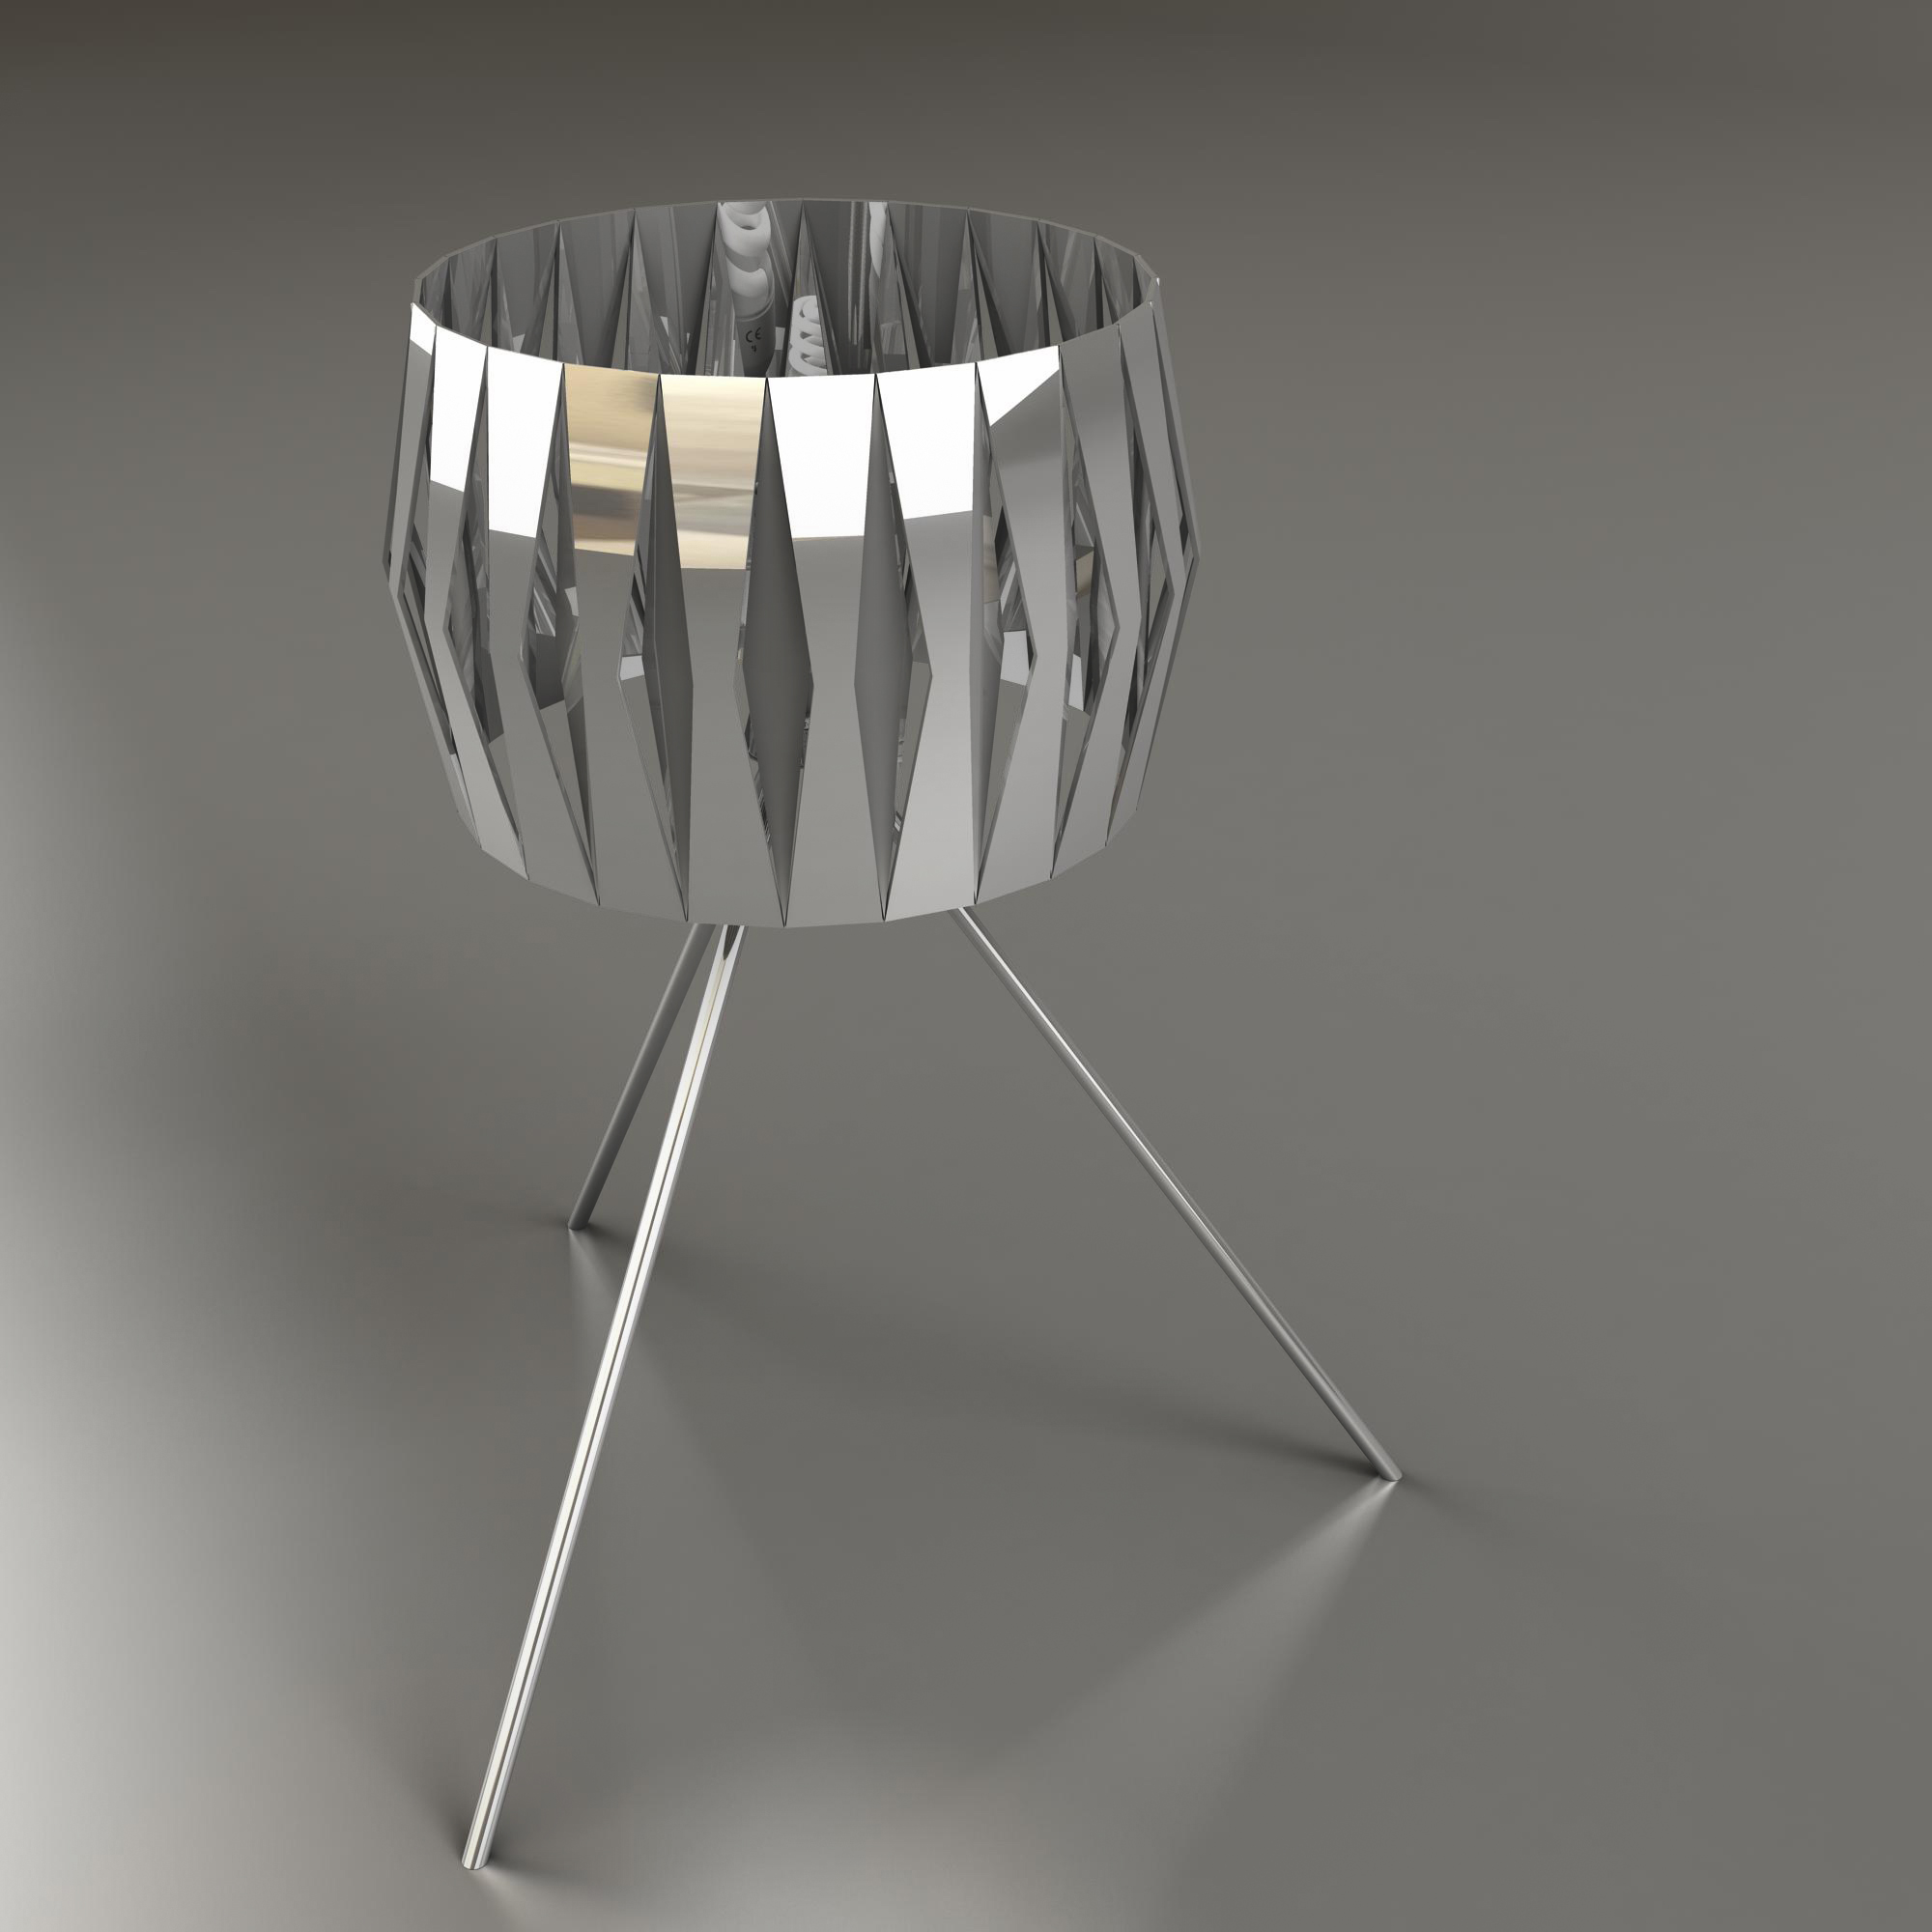 vanity lamp 3d model 3ds max fbx ma mb obj 157279